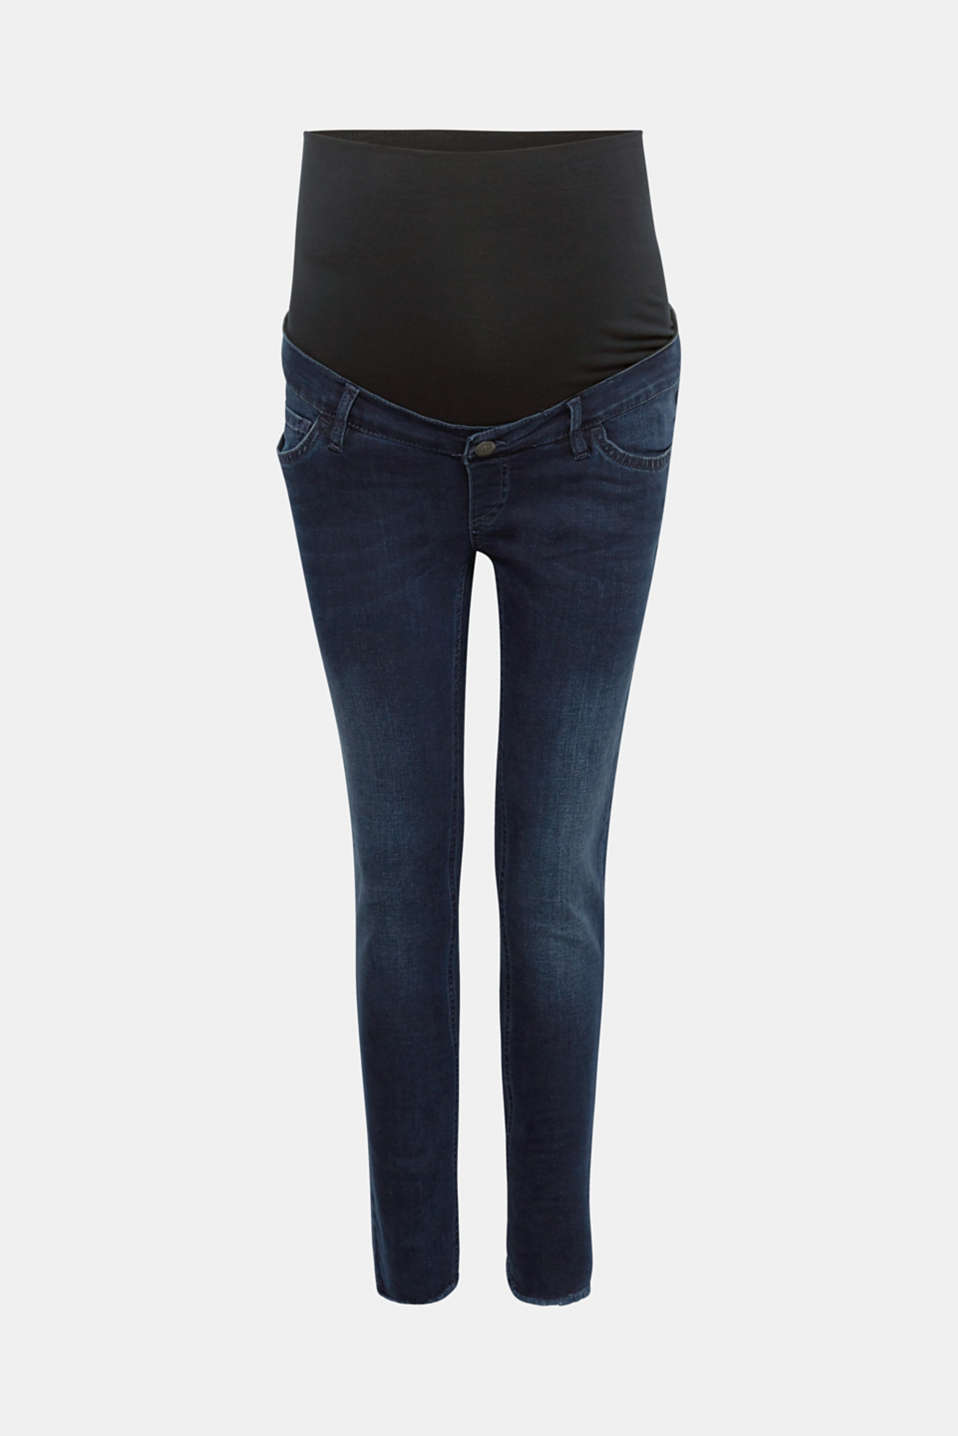 These slim fit stretch jeans owe their stylish look to the casual blue-black wash and cropped leg with frayed hems!